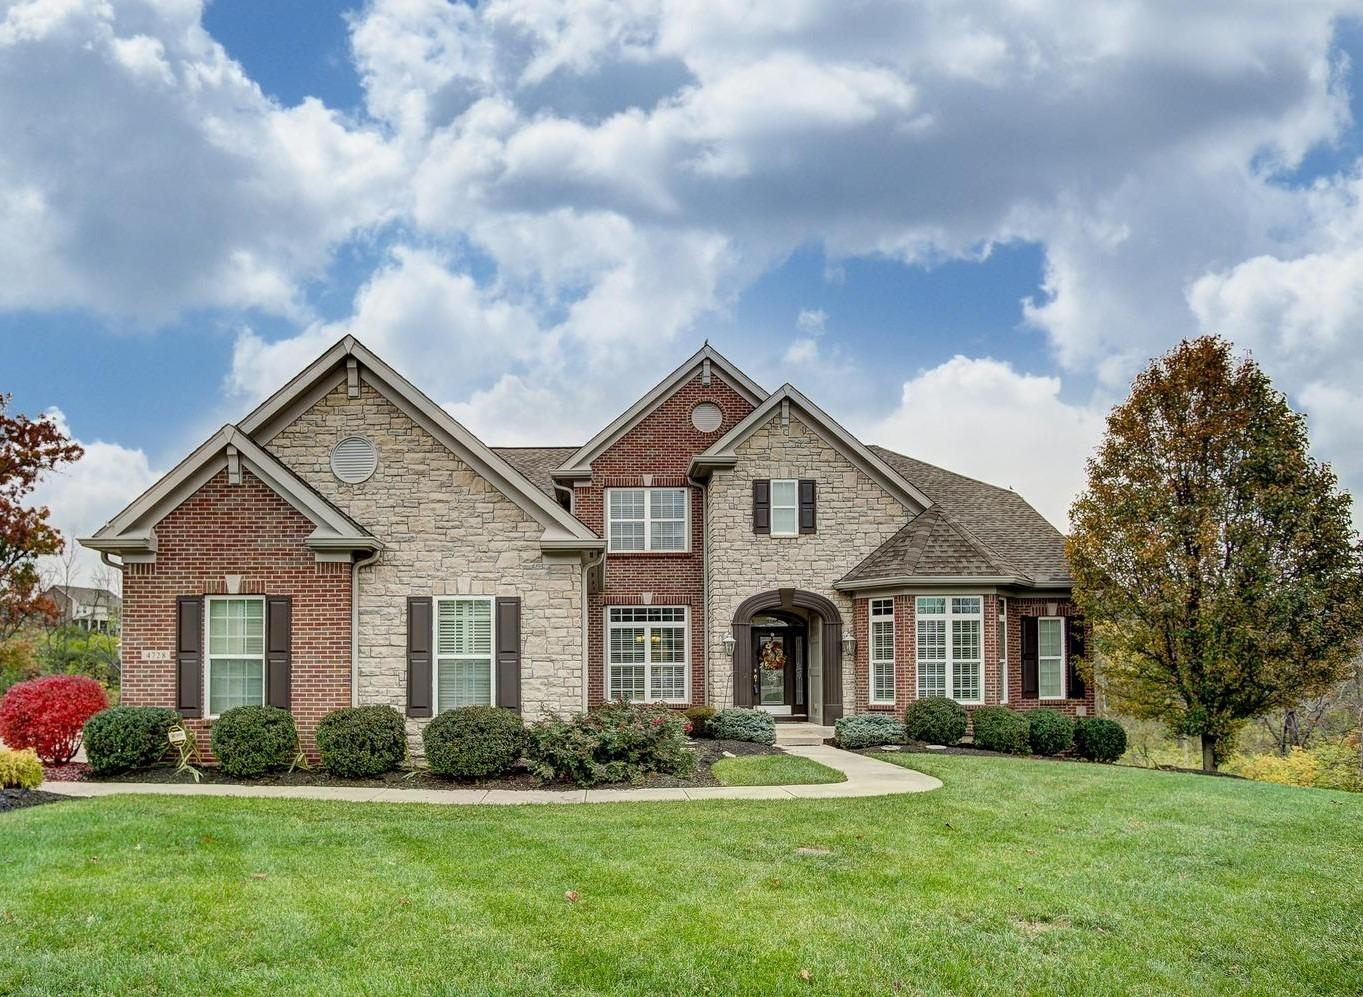 Property for sale at 4728 Guildford Lane, West Chester,  OH 45069